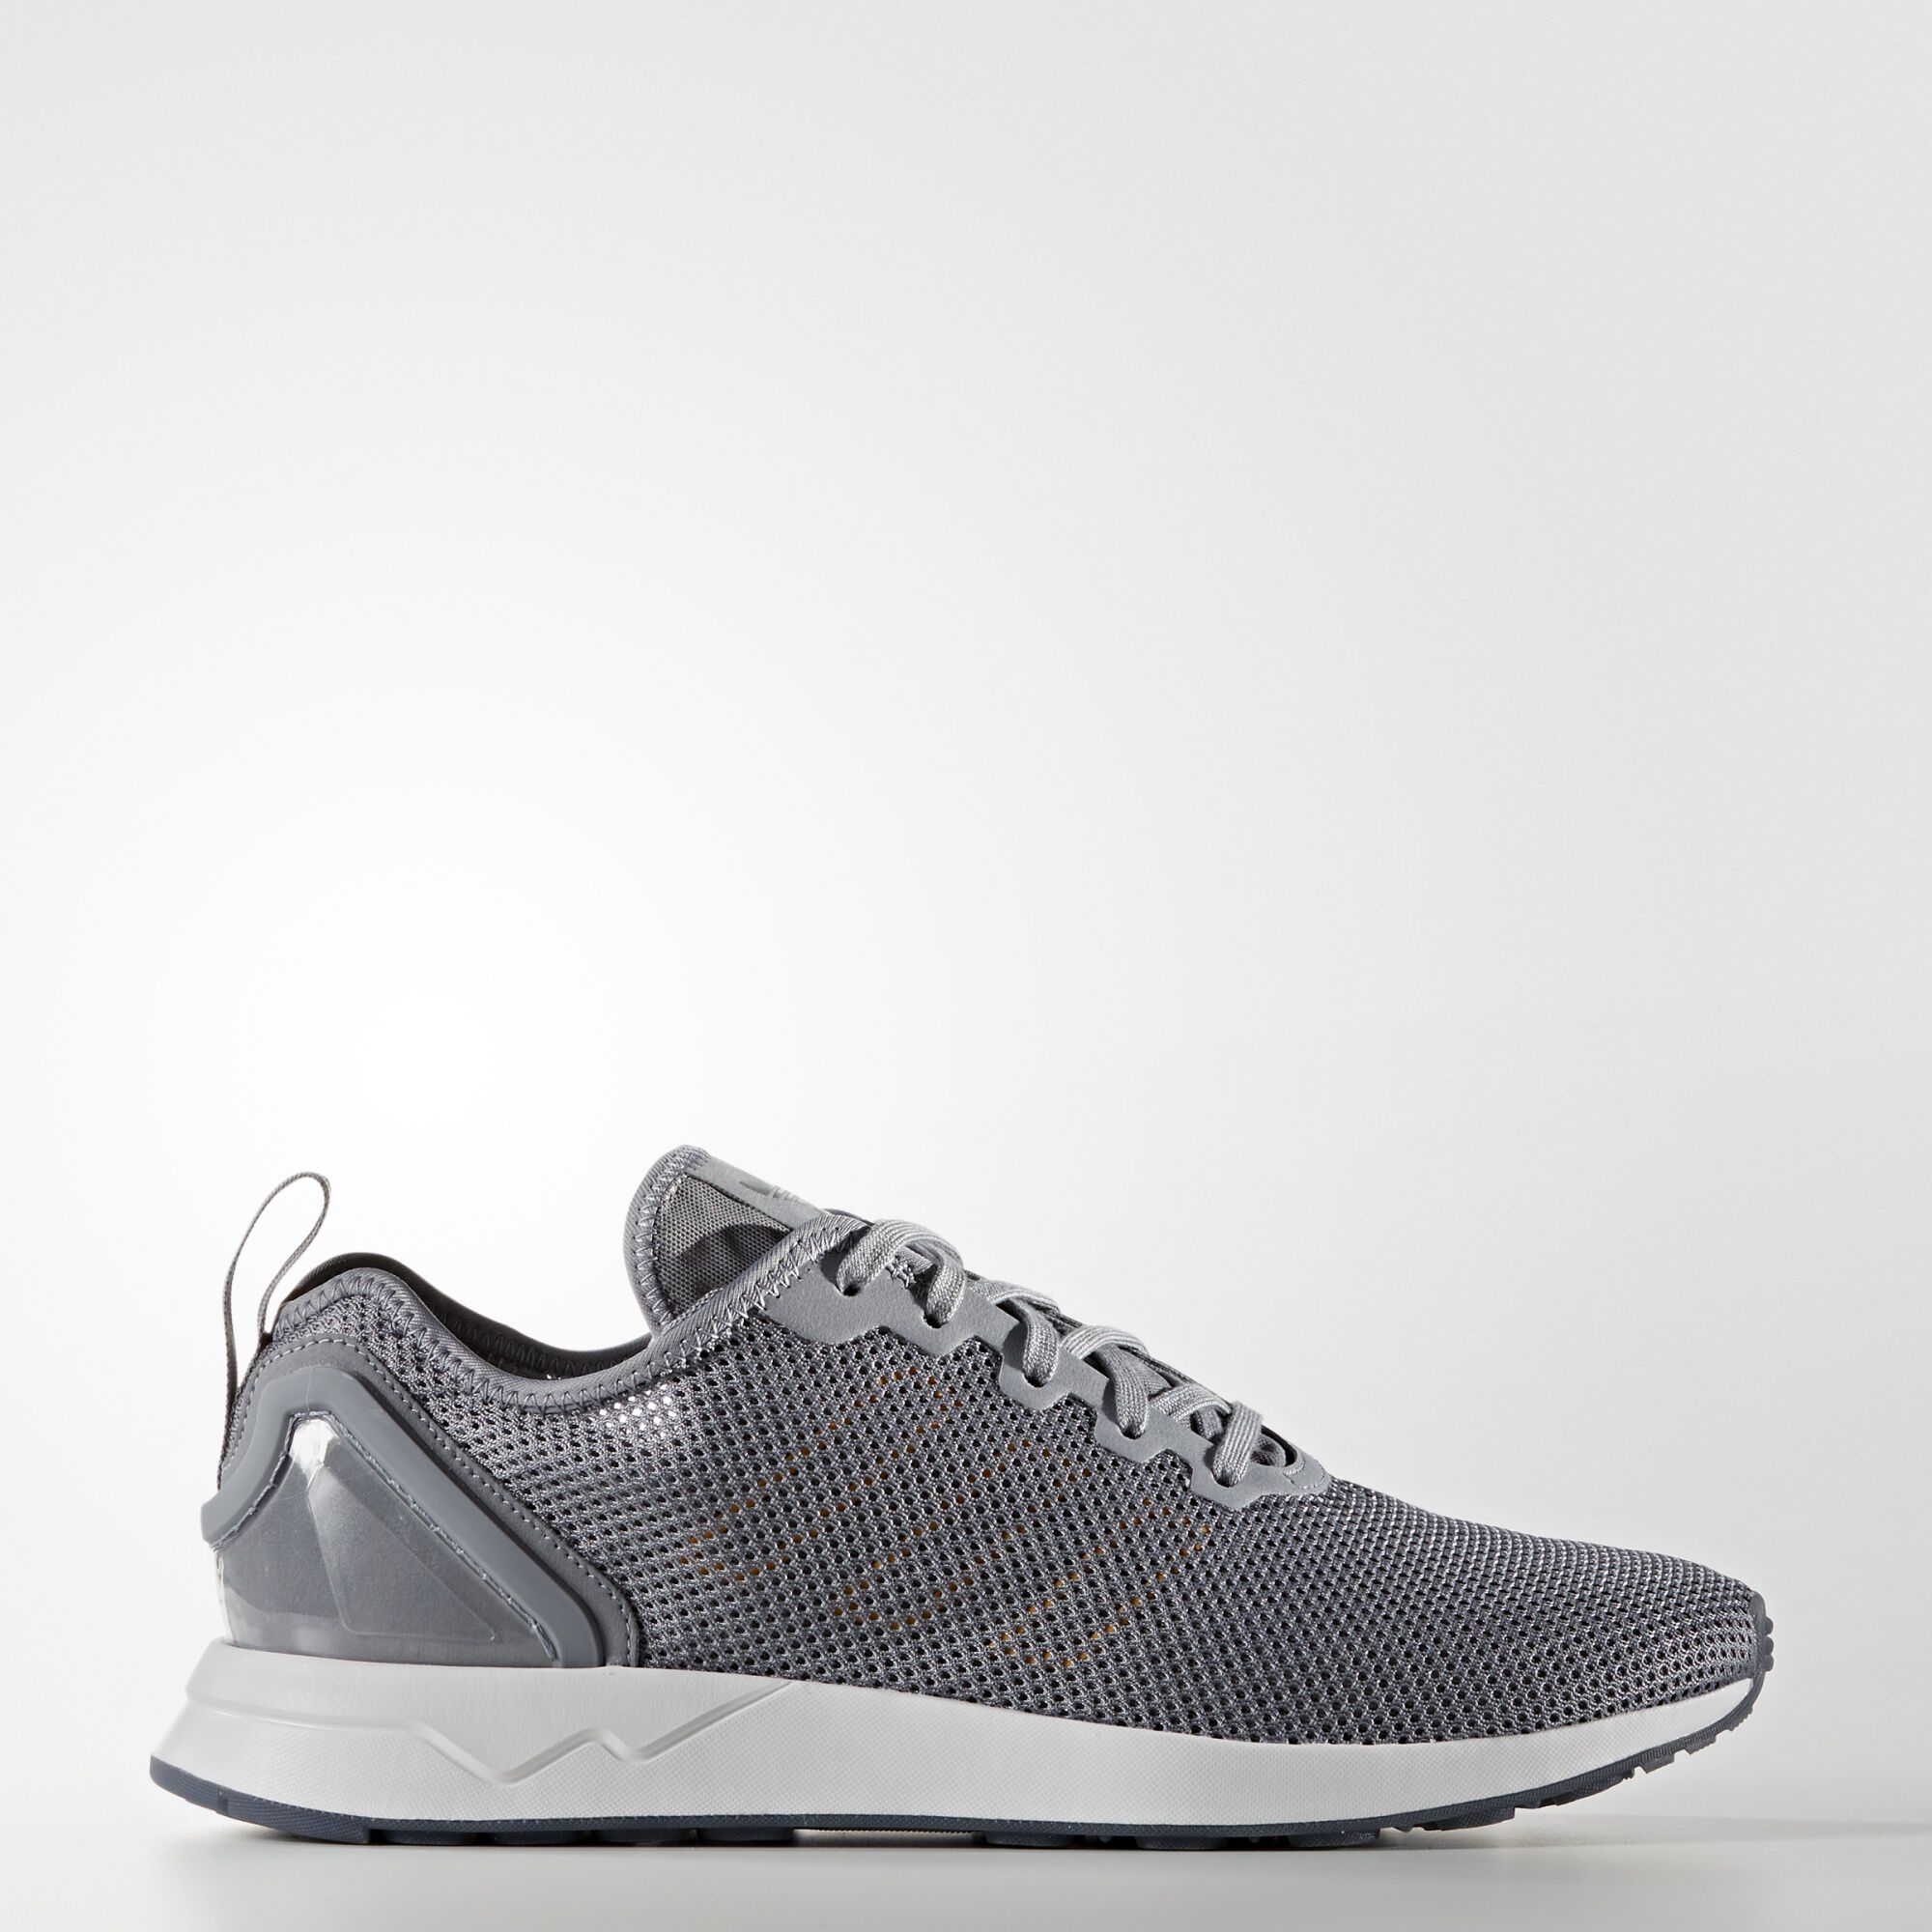 Adidas Zx Flux Adv Grey And White